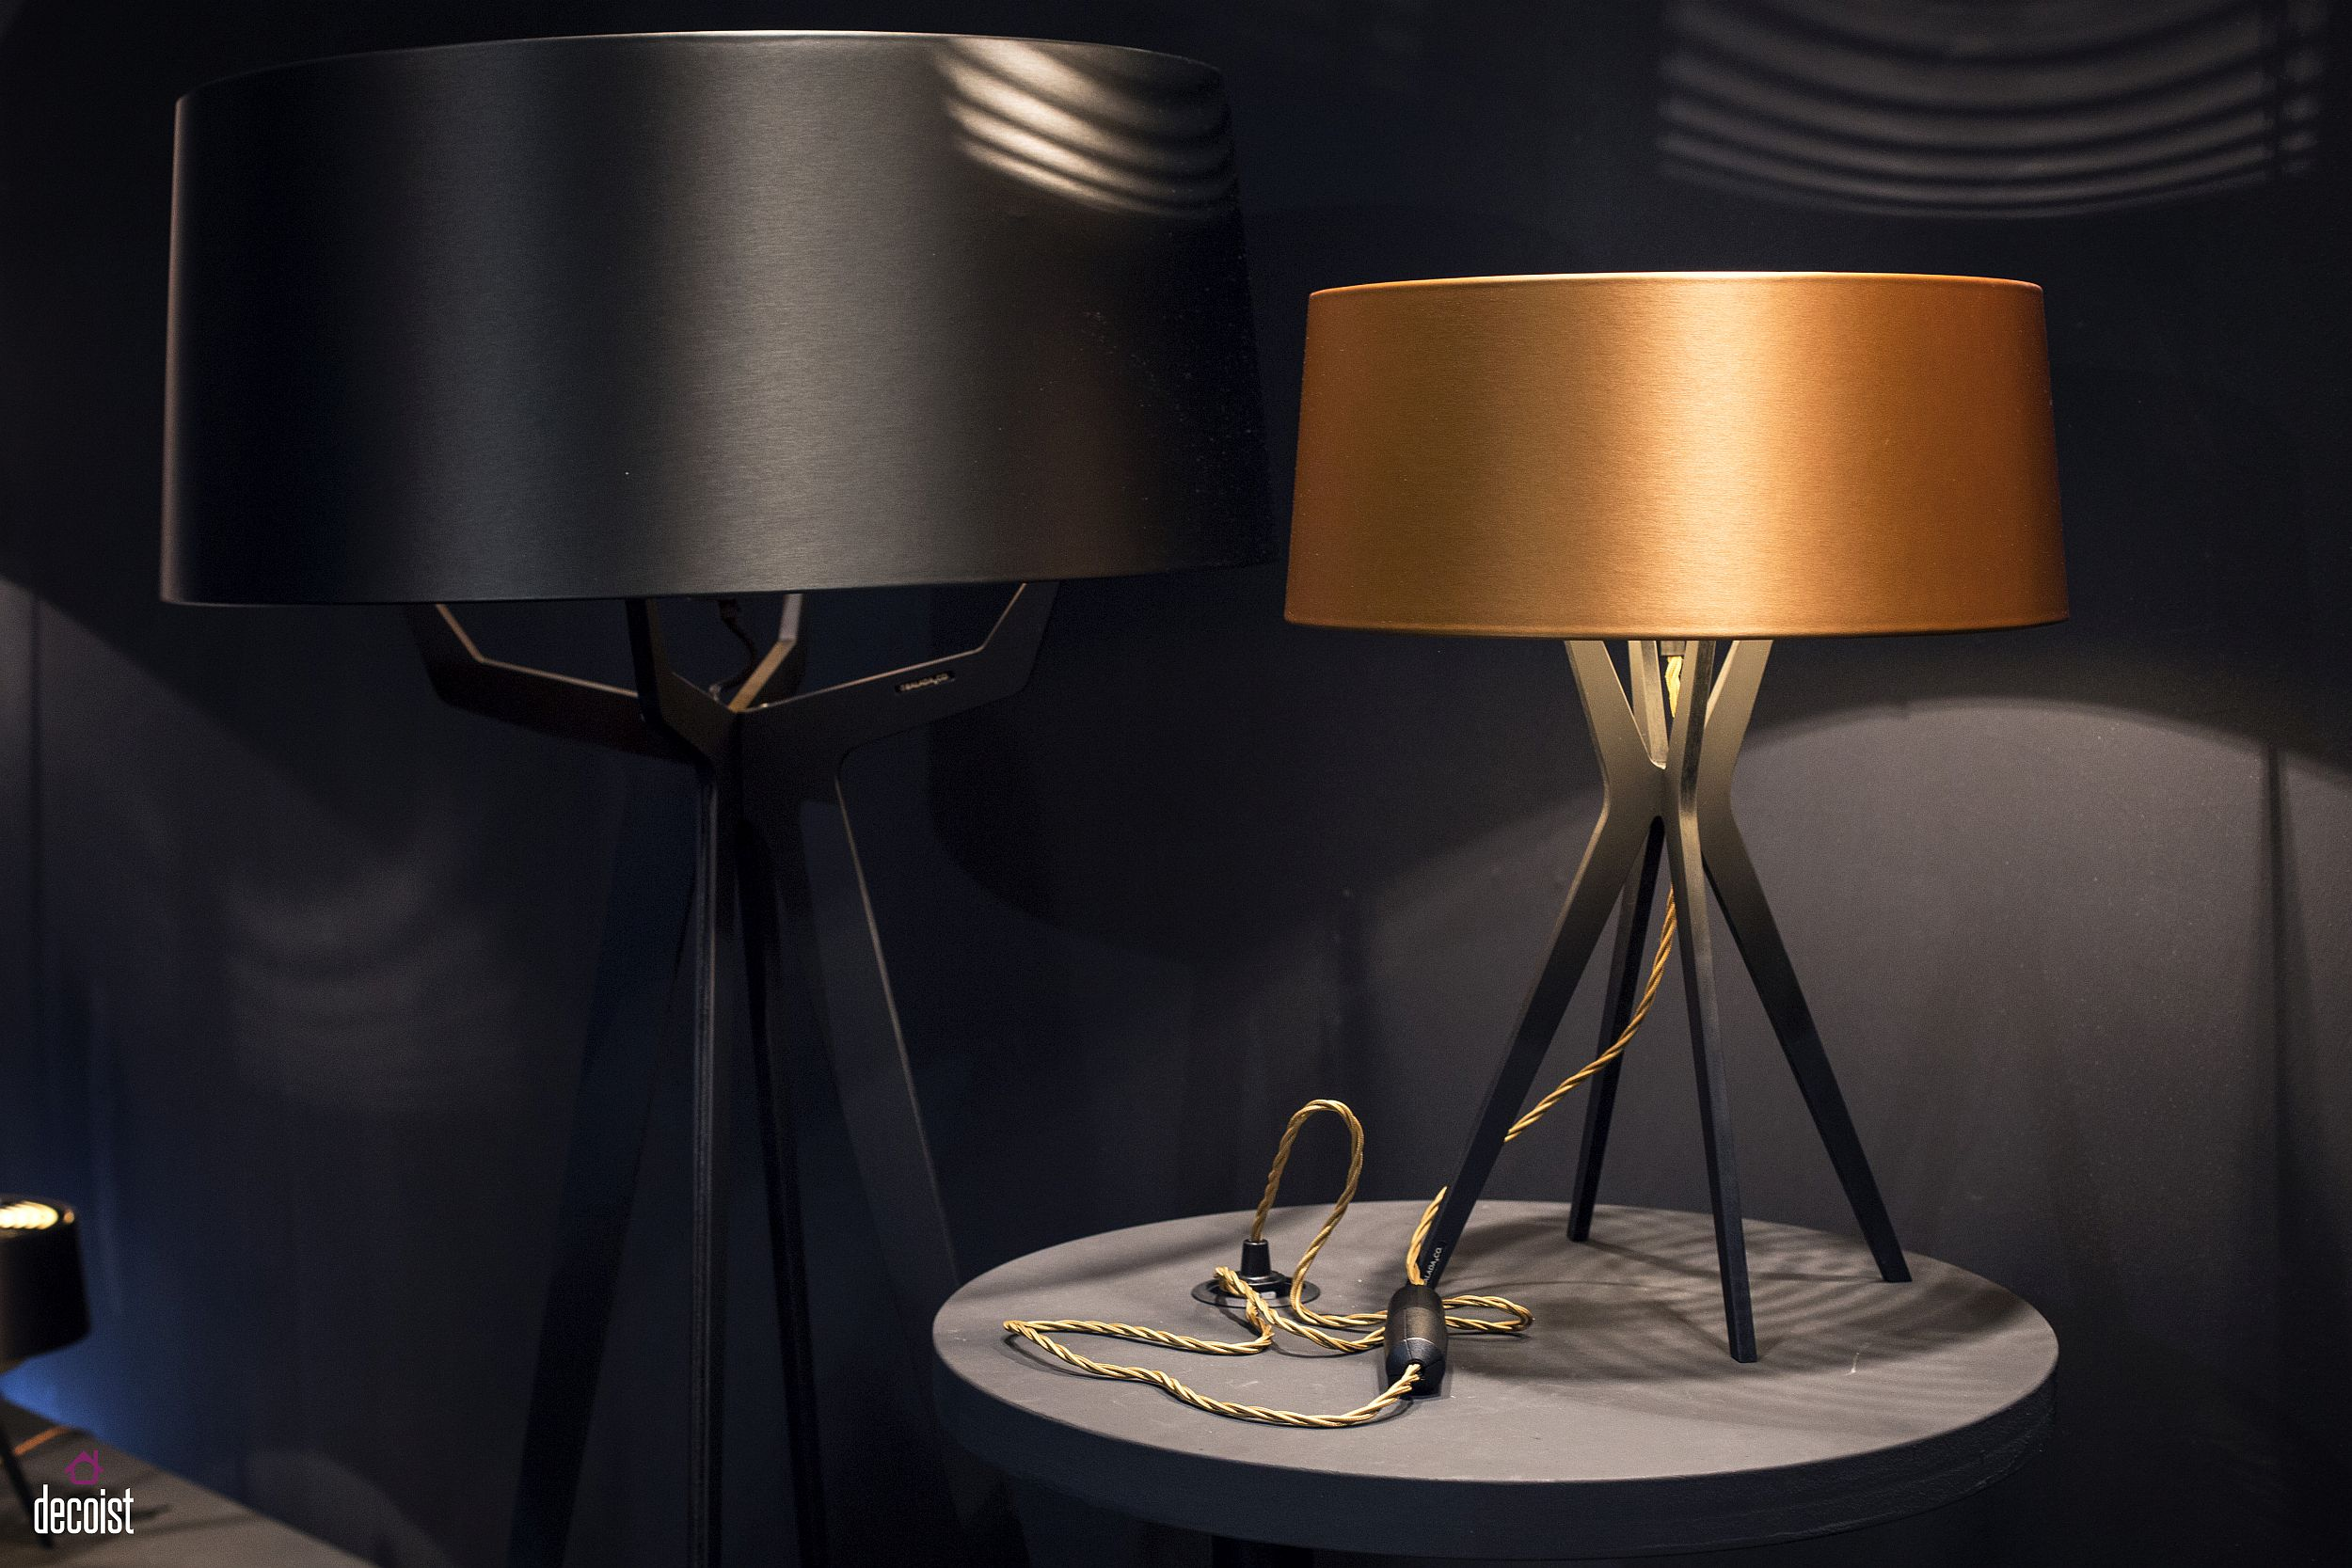 Selecting floor and table lamps that complement one another is a great way to create a dashing bedroom